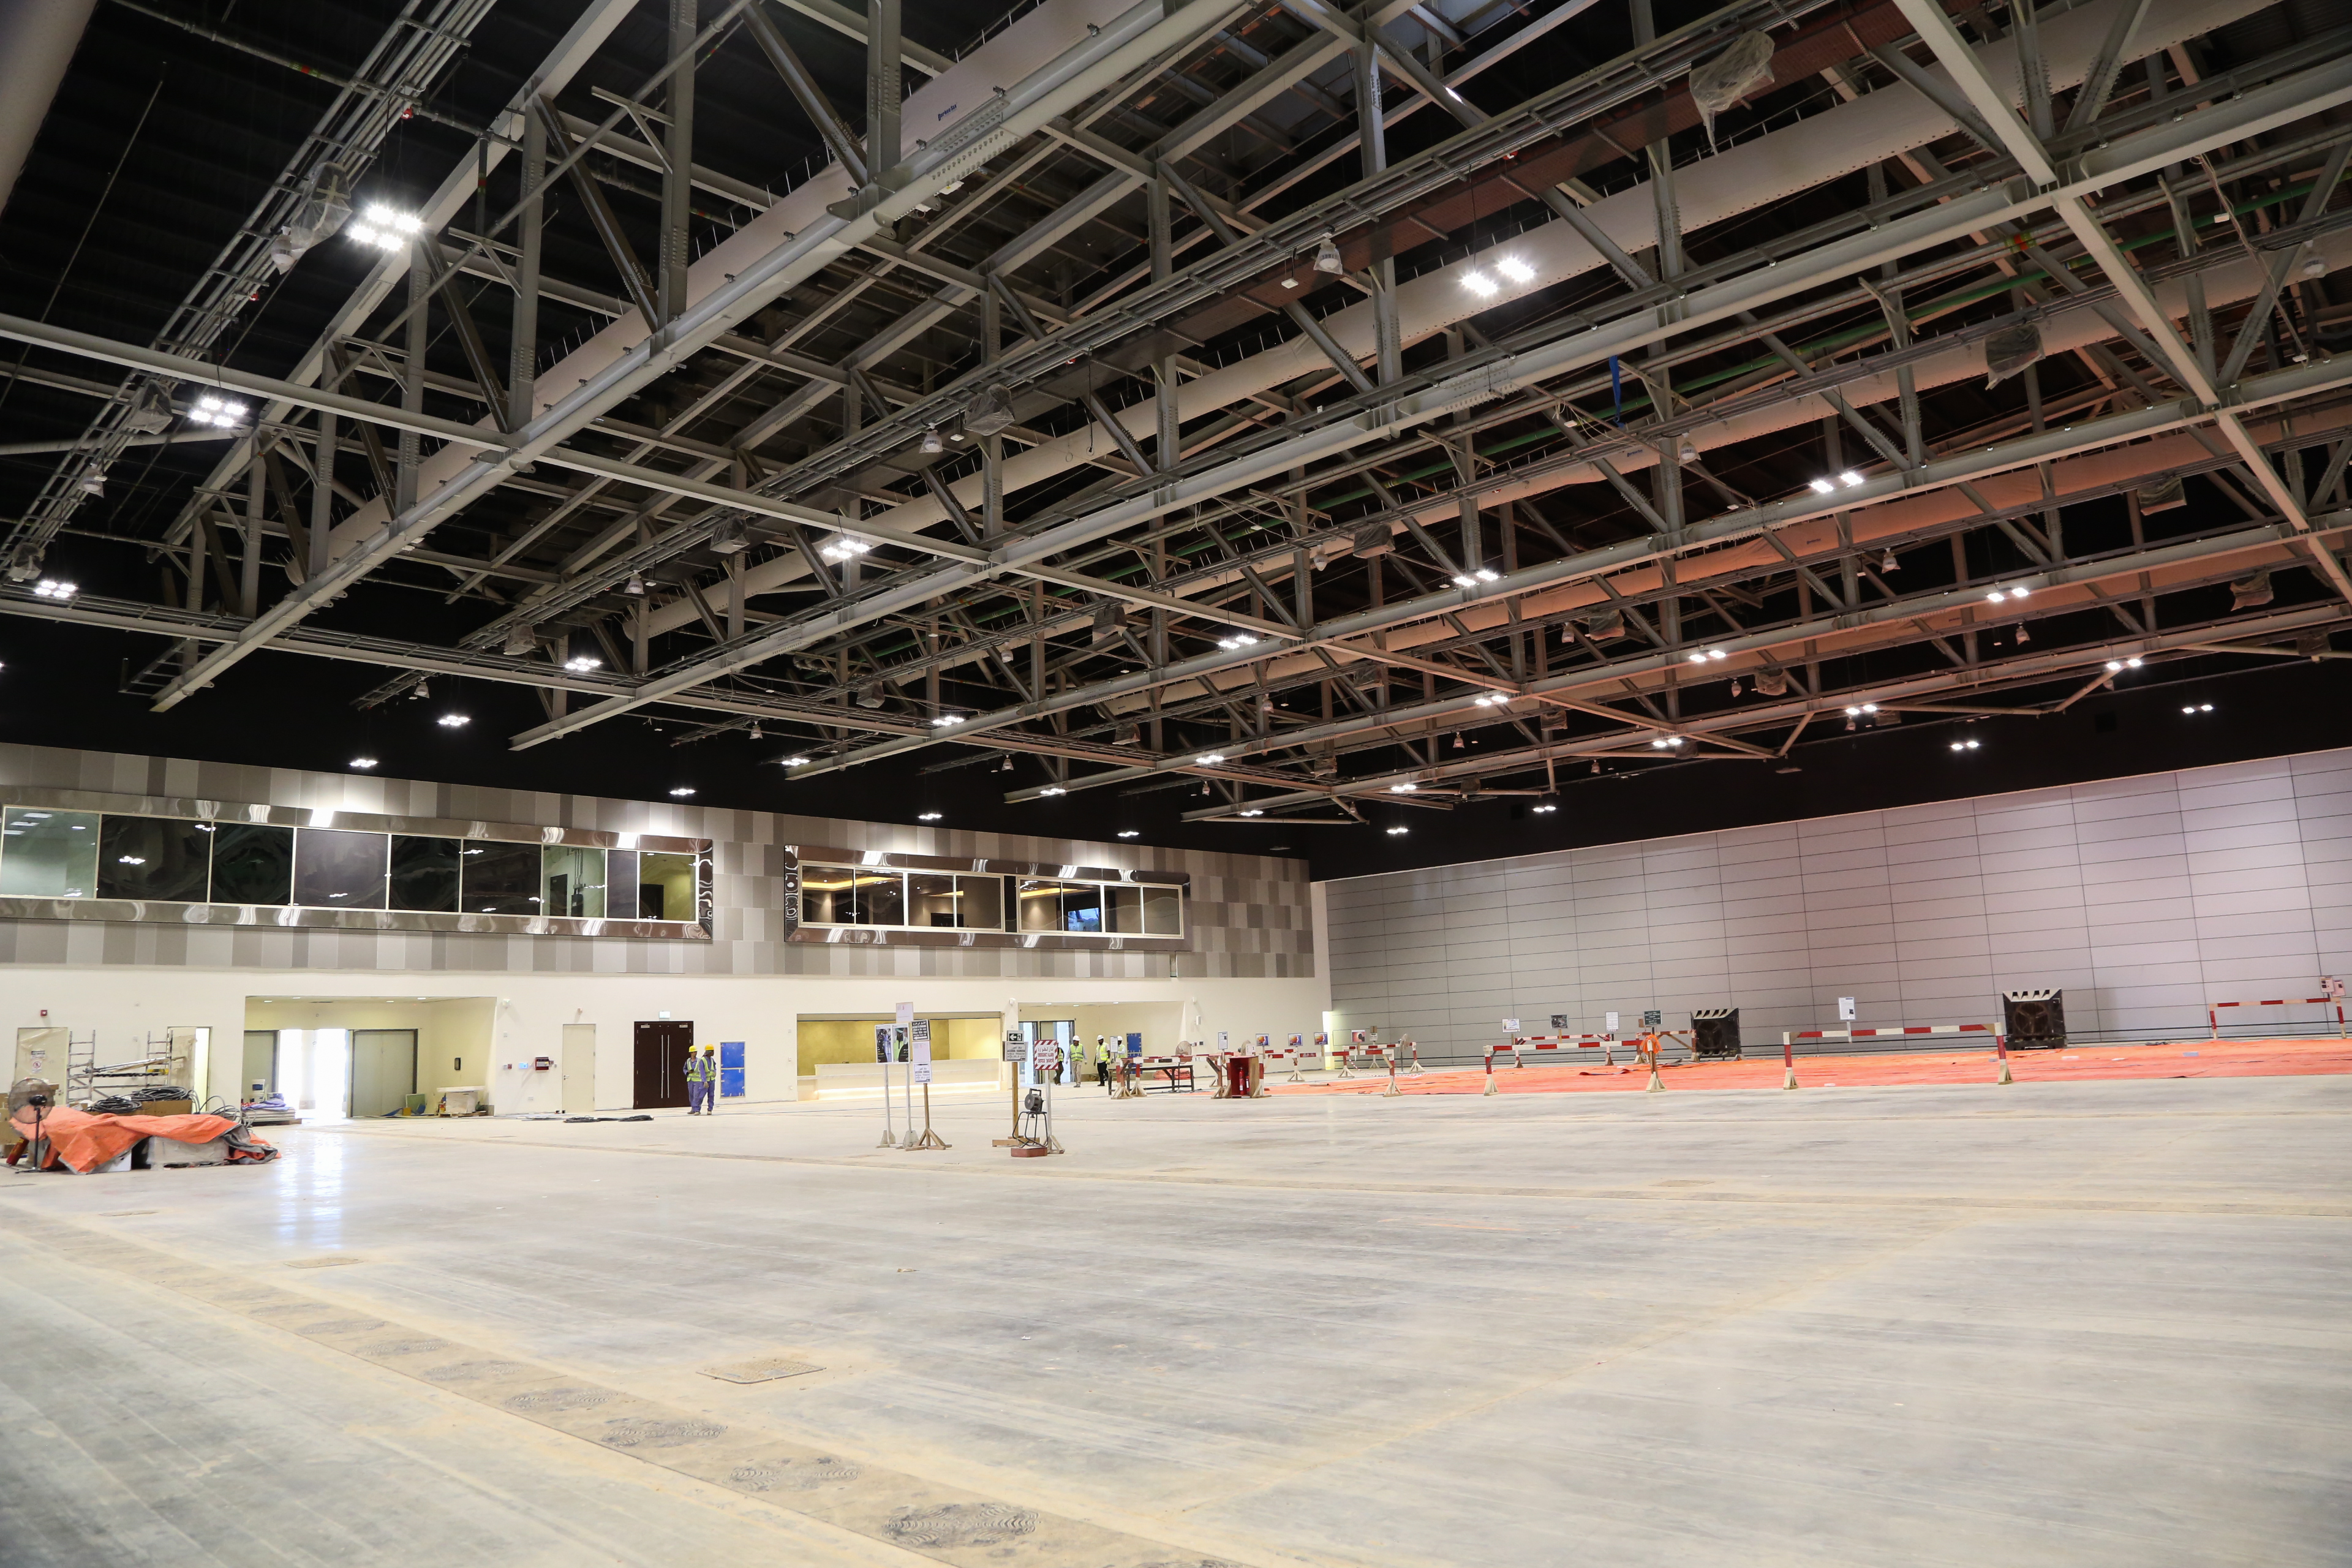 Oman's convention centre will open its doors this month